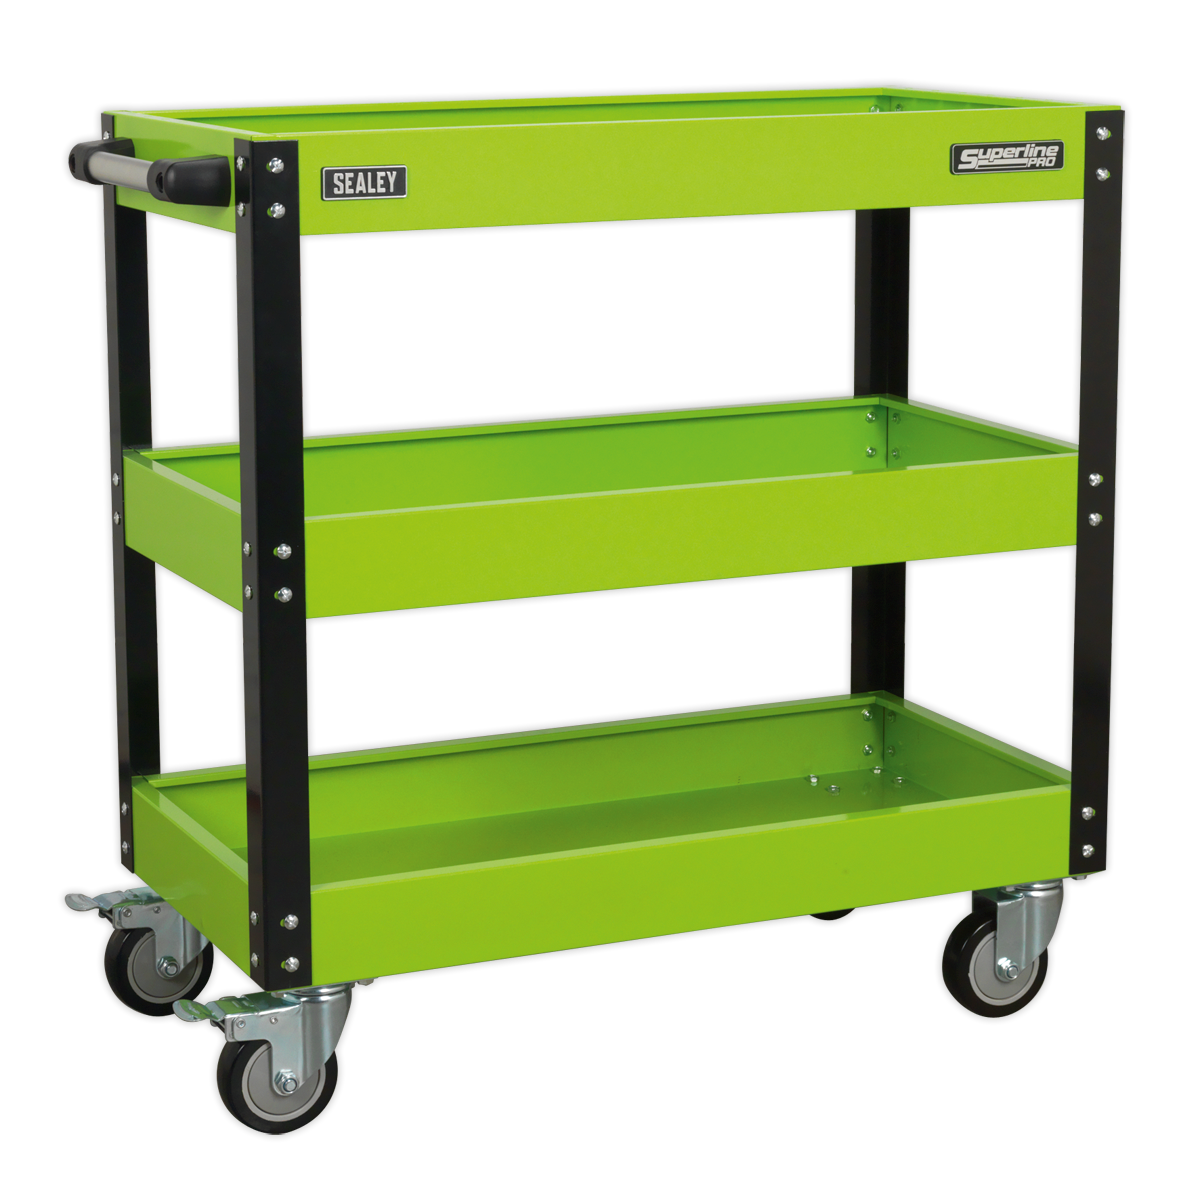 SEALEY Trolley 3 Level Heavy Duty Hi-Vis Green